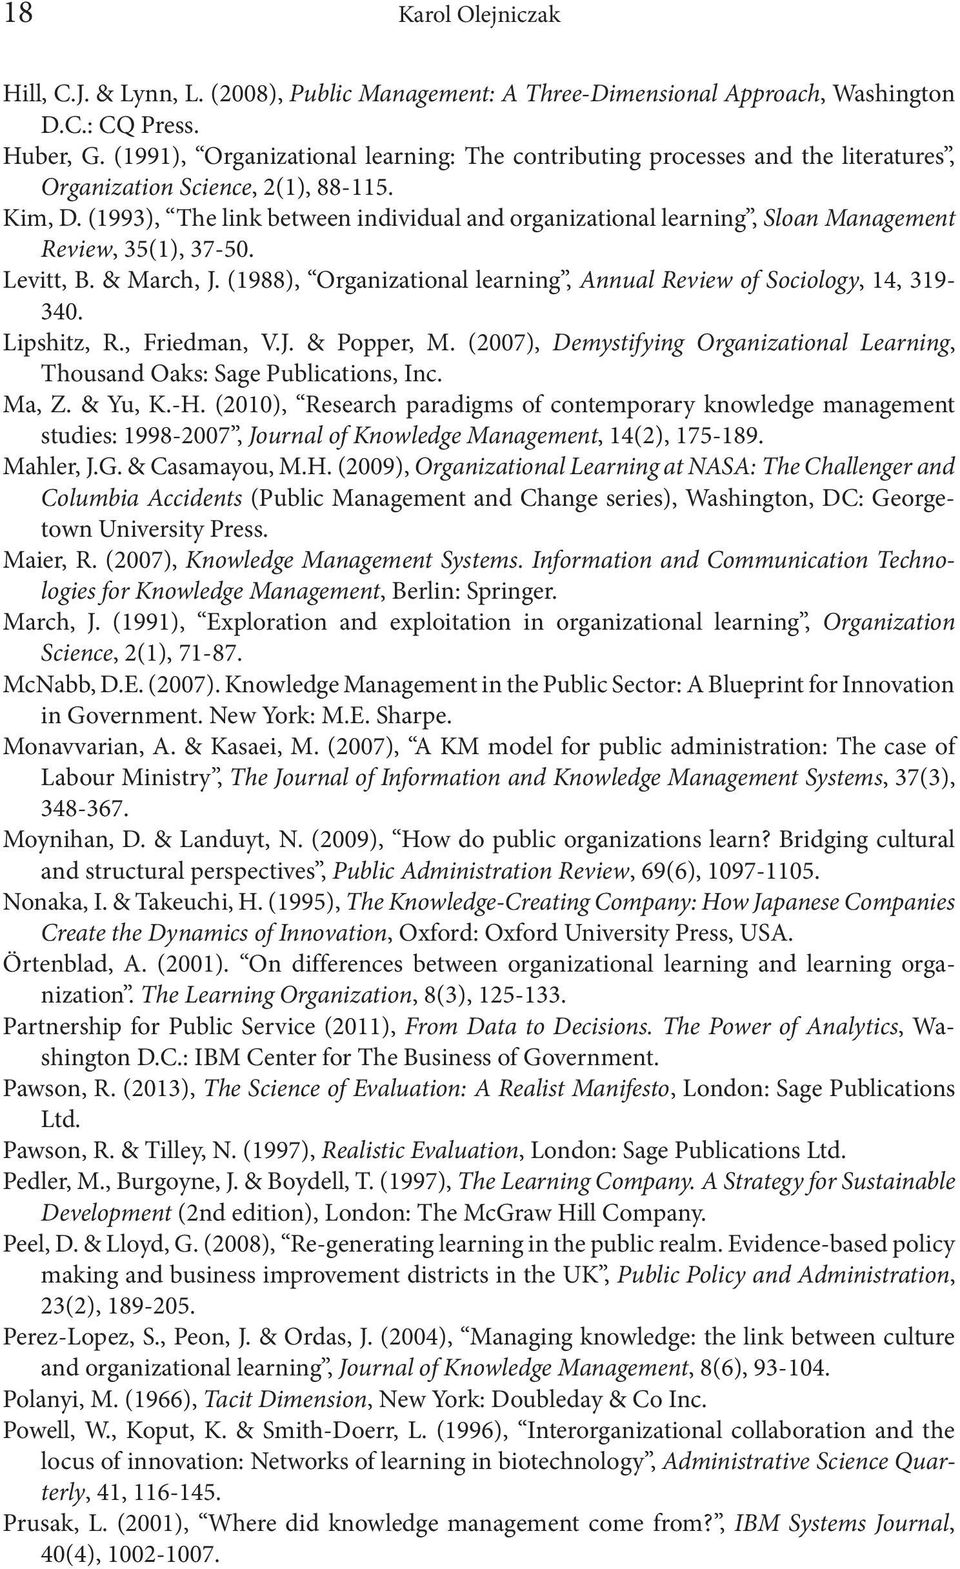 (1993), The link between individual and organizational learning, Sloan Management Review, 35(1), 37-50. Levitt, B. & March, J. (1988), Organizational learning, Annual Review of Sociology, 14, 319-340.